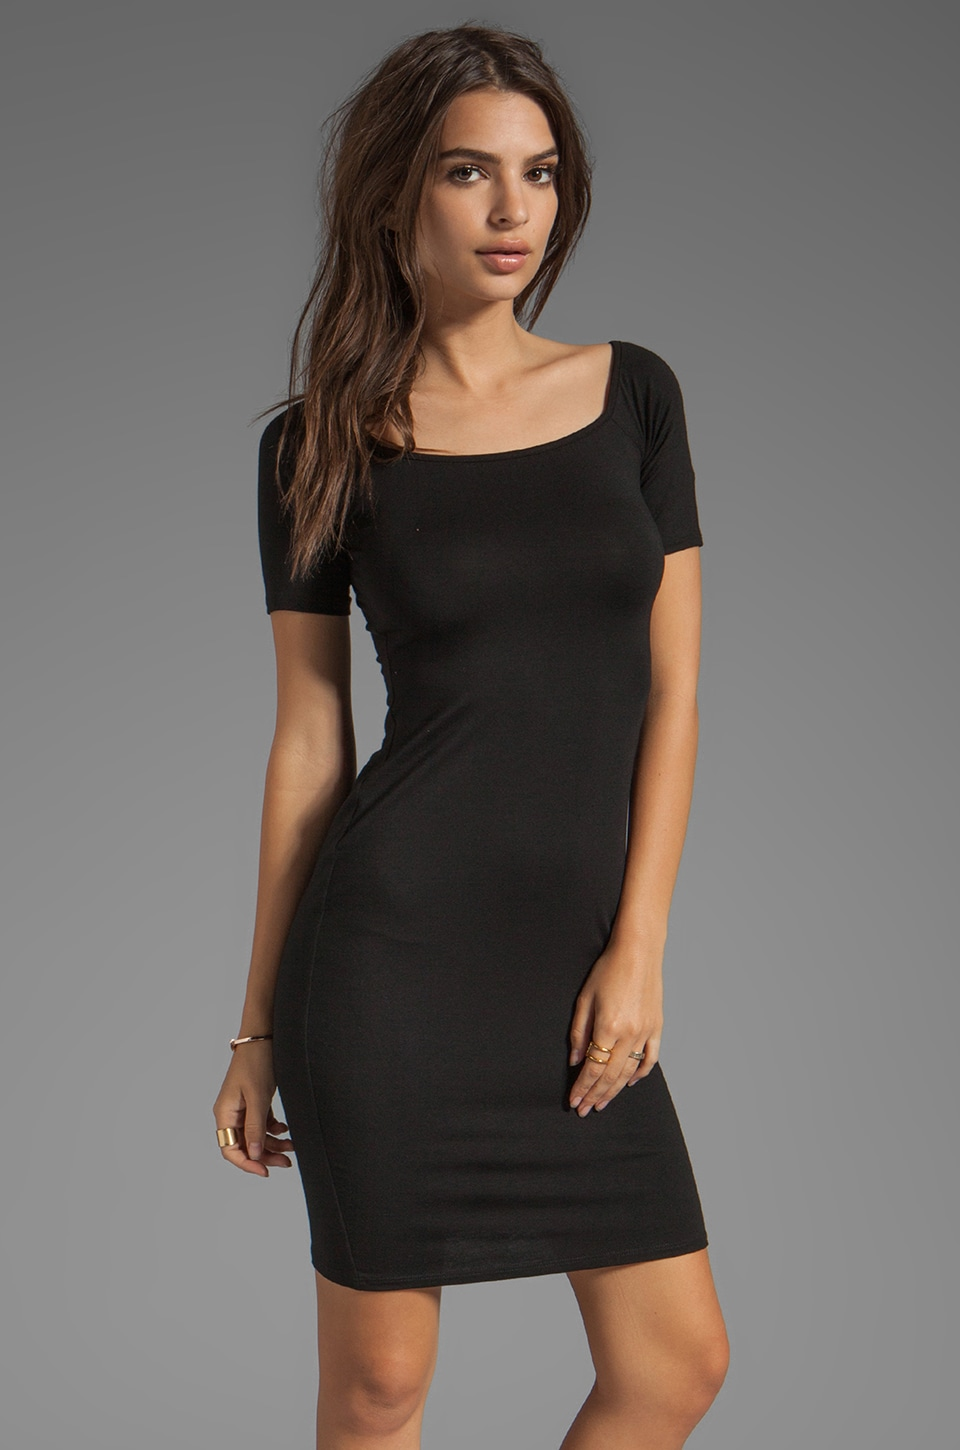 Rachel Pally Short Sleeve Jagger Dress in Black